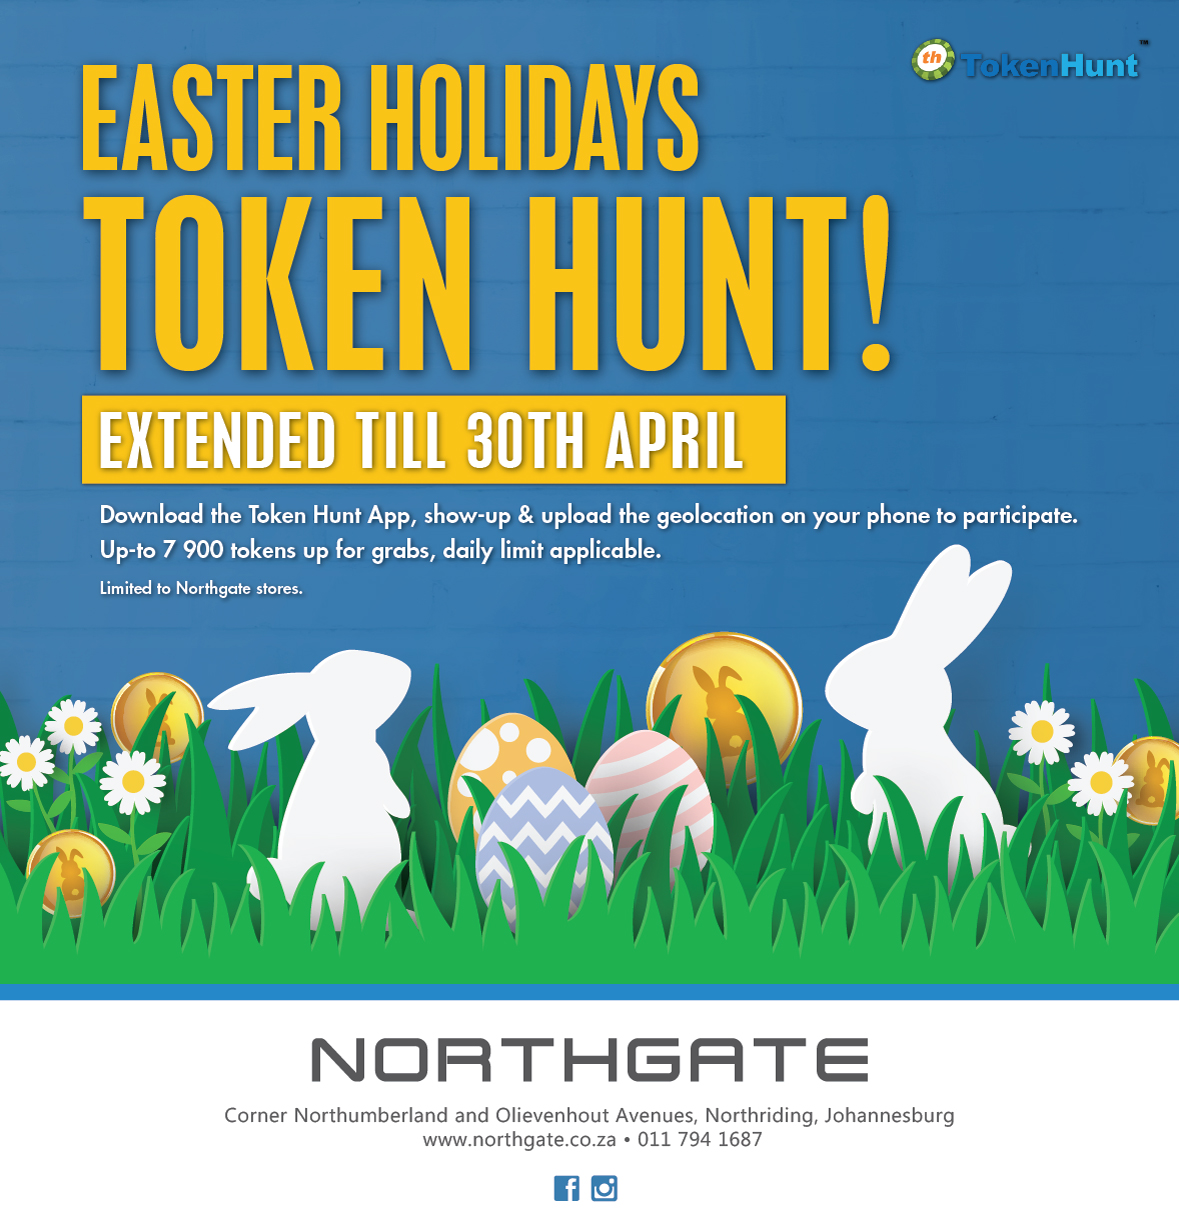 The #EasterHolidaysTokenHunt is extended until 30 April.